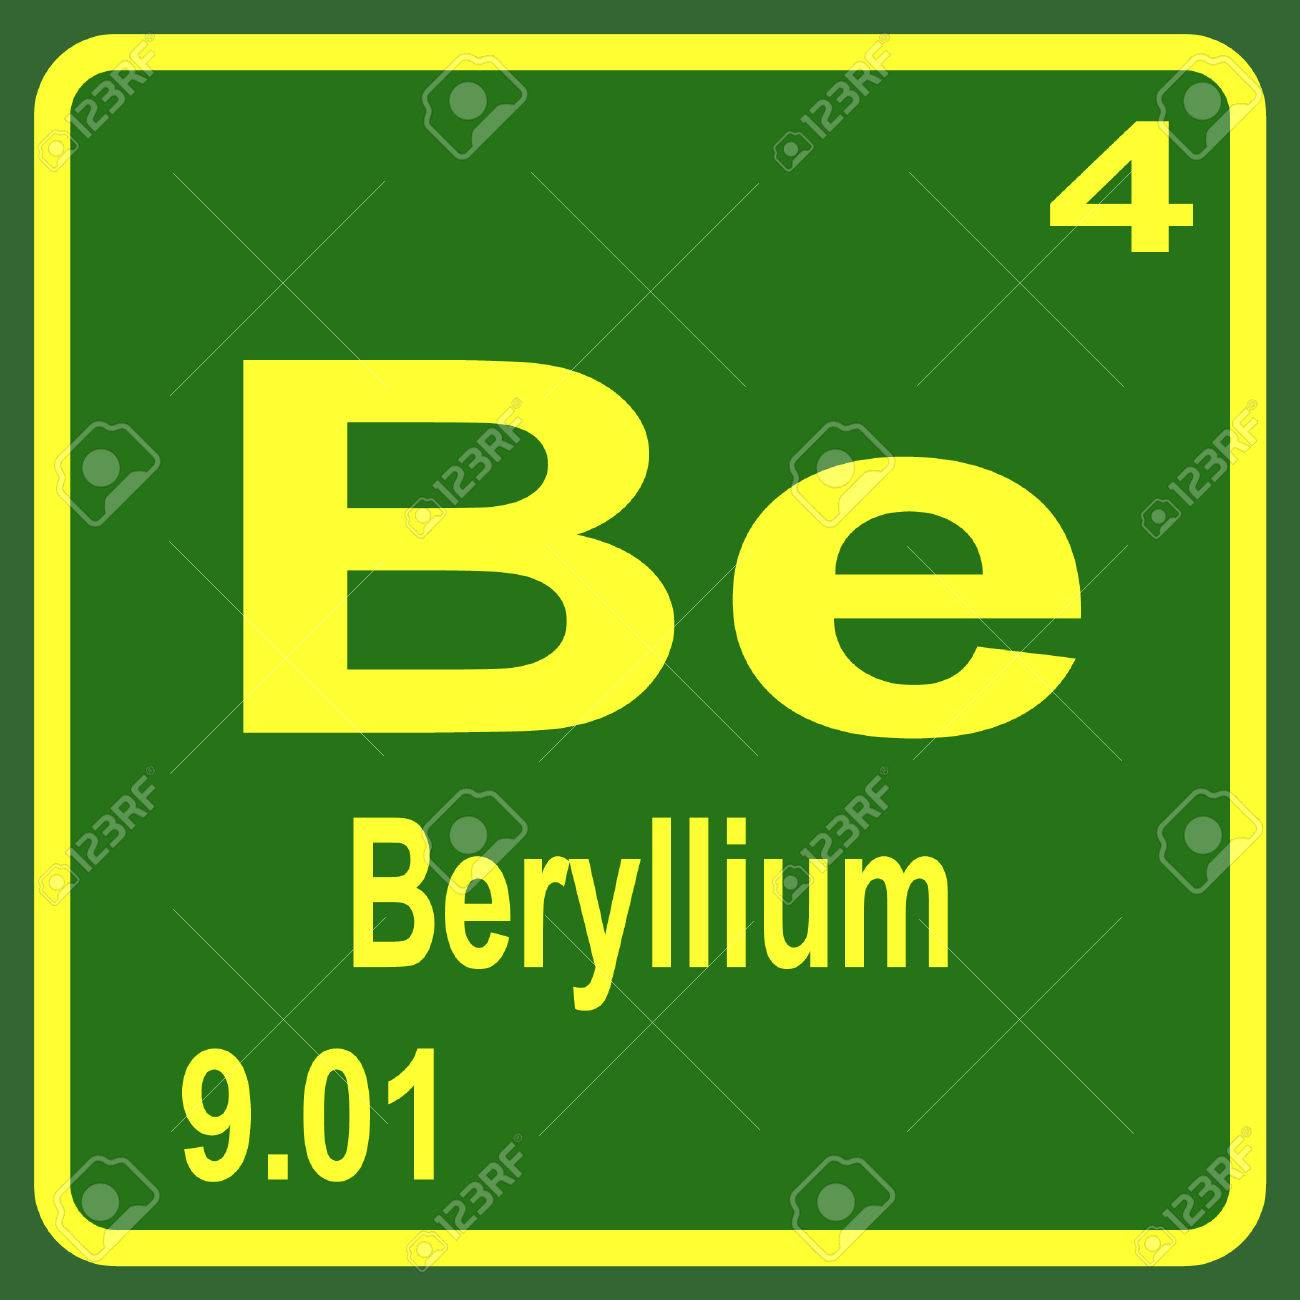 Periodic table of elements beryllium royalty free cliparts periodic table of elements beryllium stock vector 53900231 urtaz